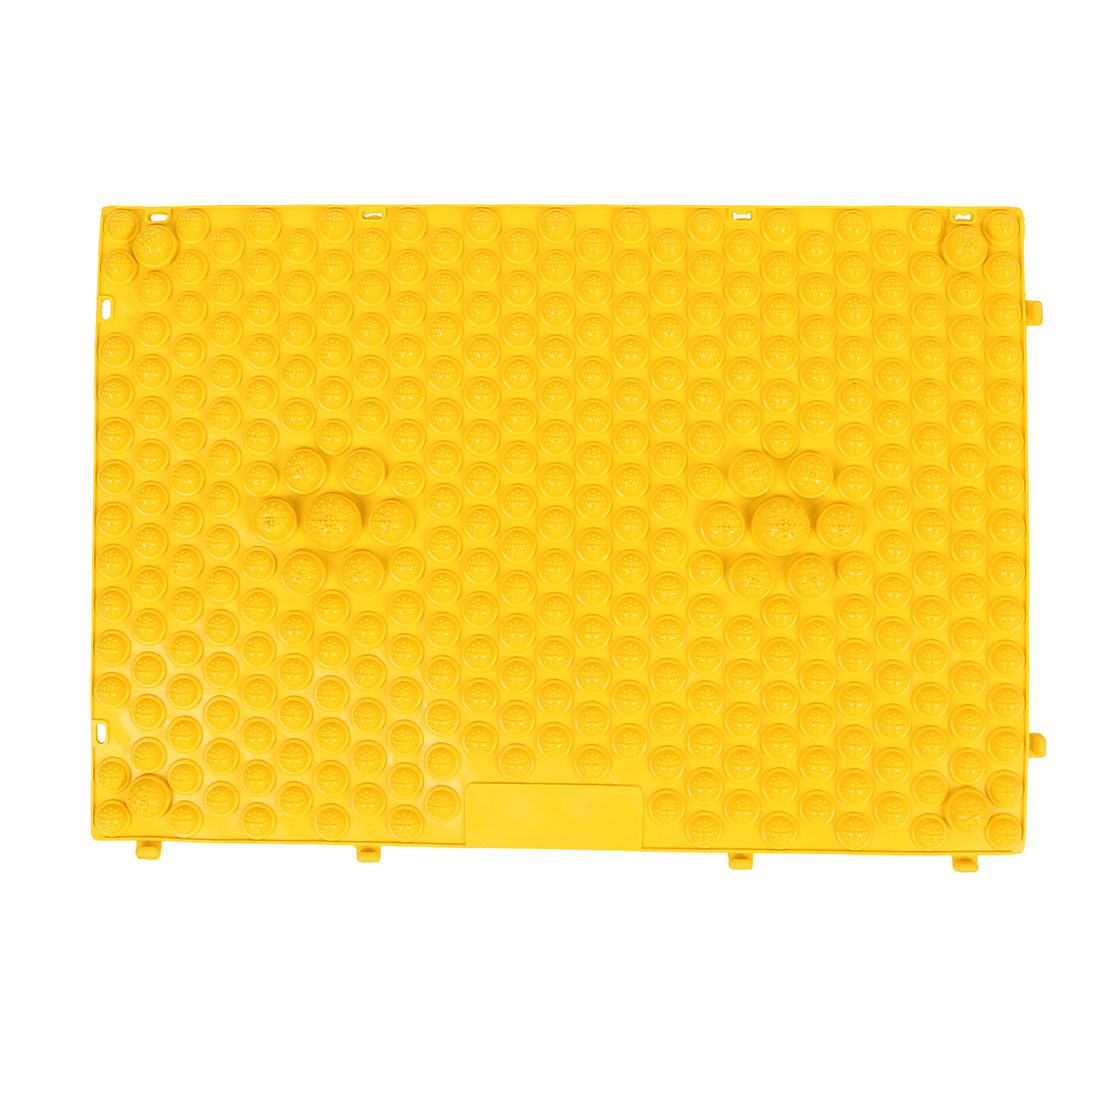 Outdoor Leisure Game Rubber Acupuncture Foot Massage Mat Shiatsu Sheet Yellow